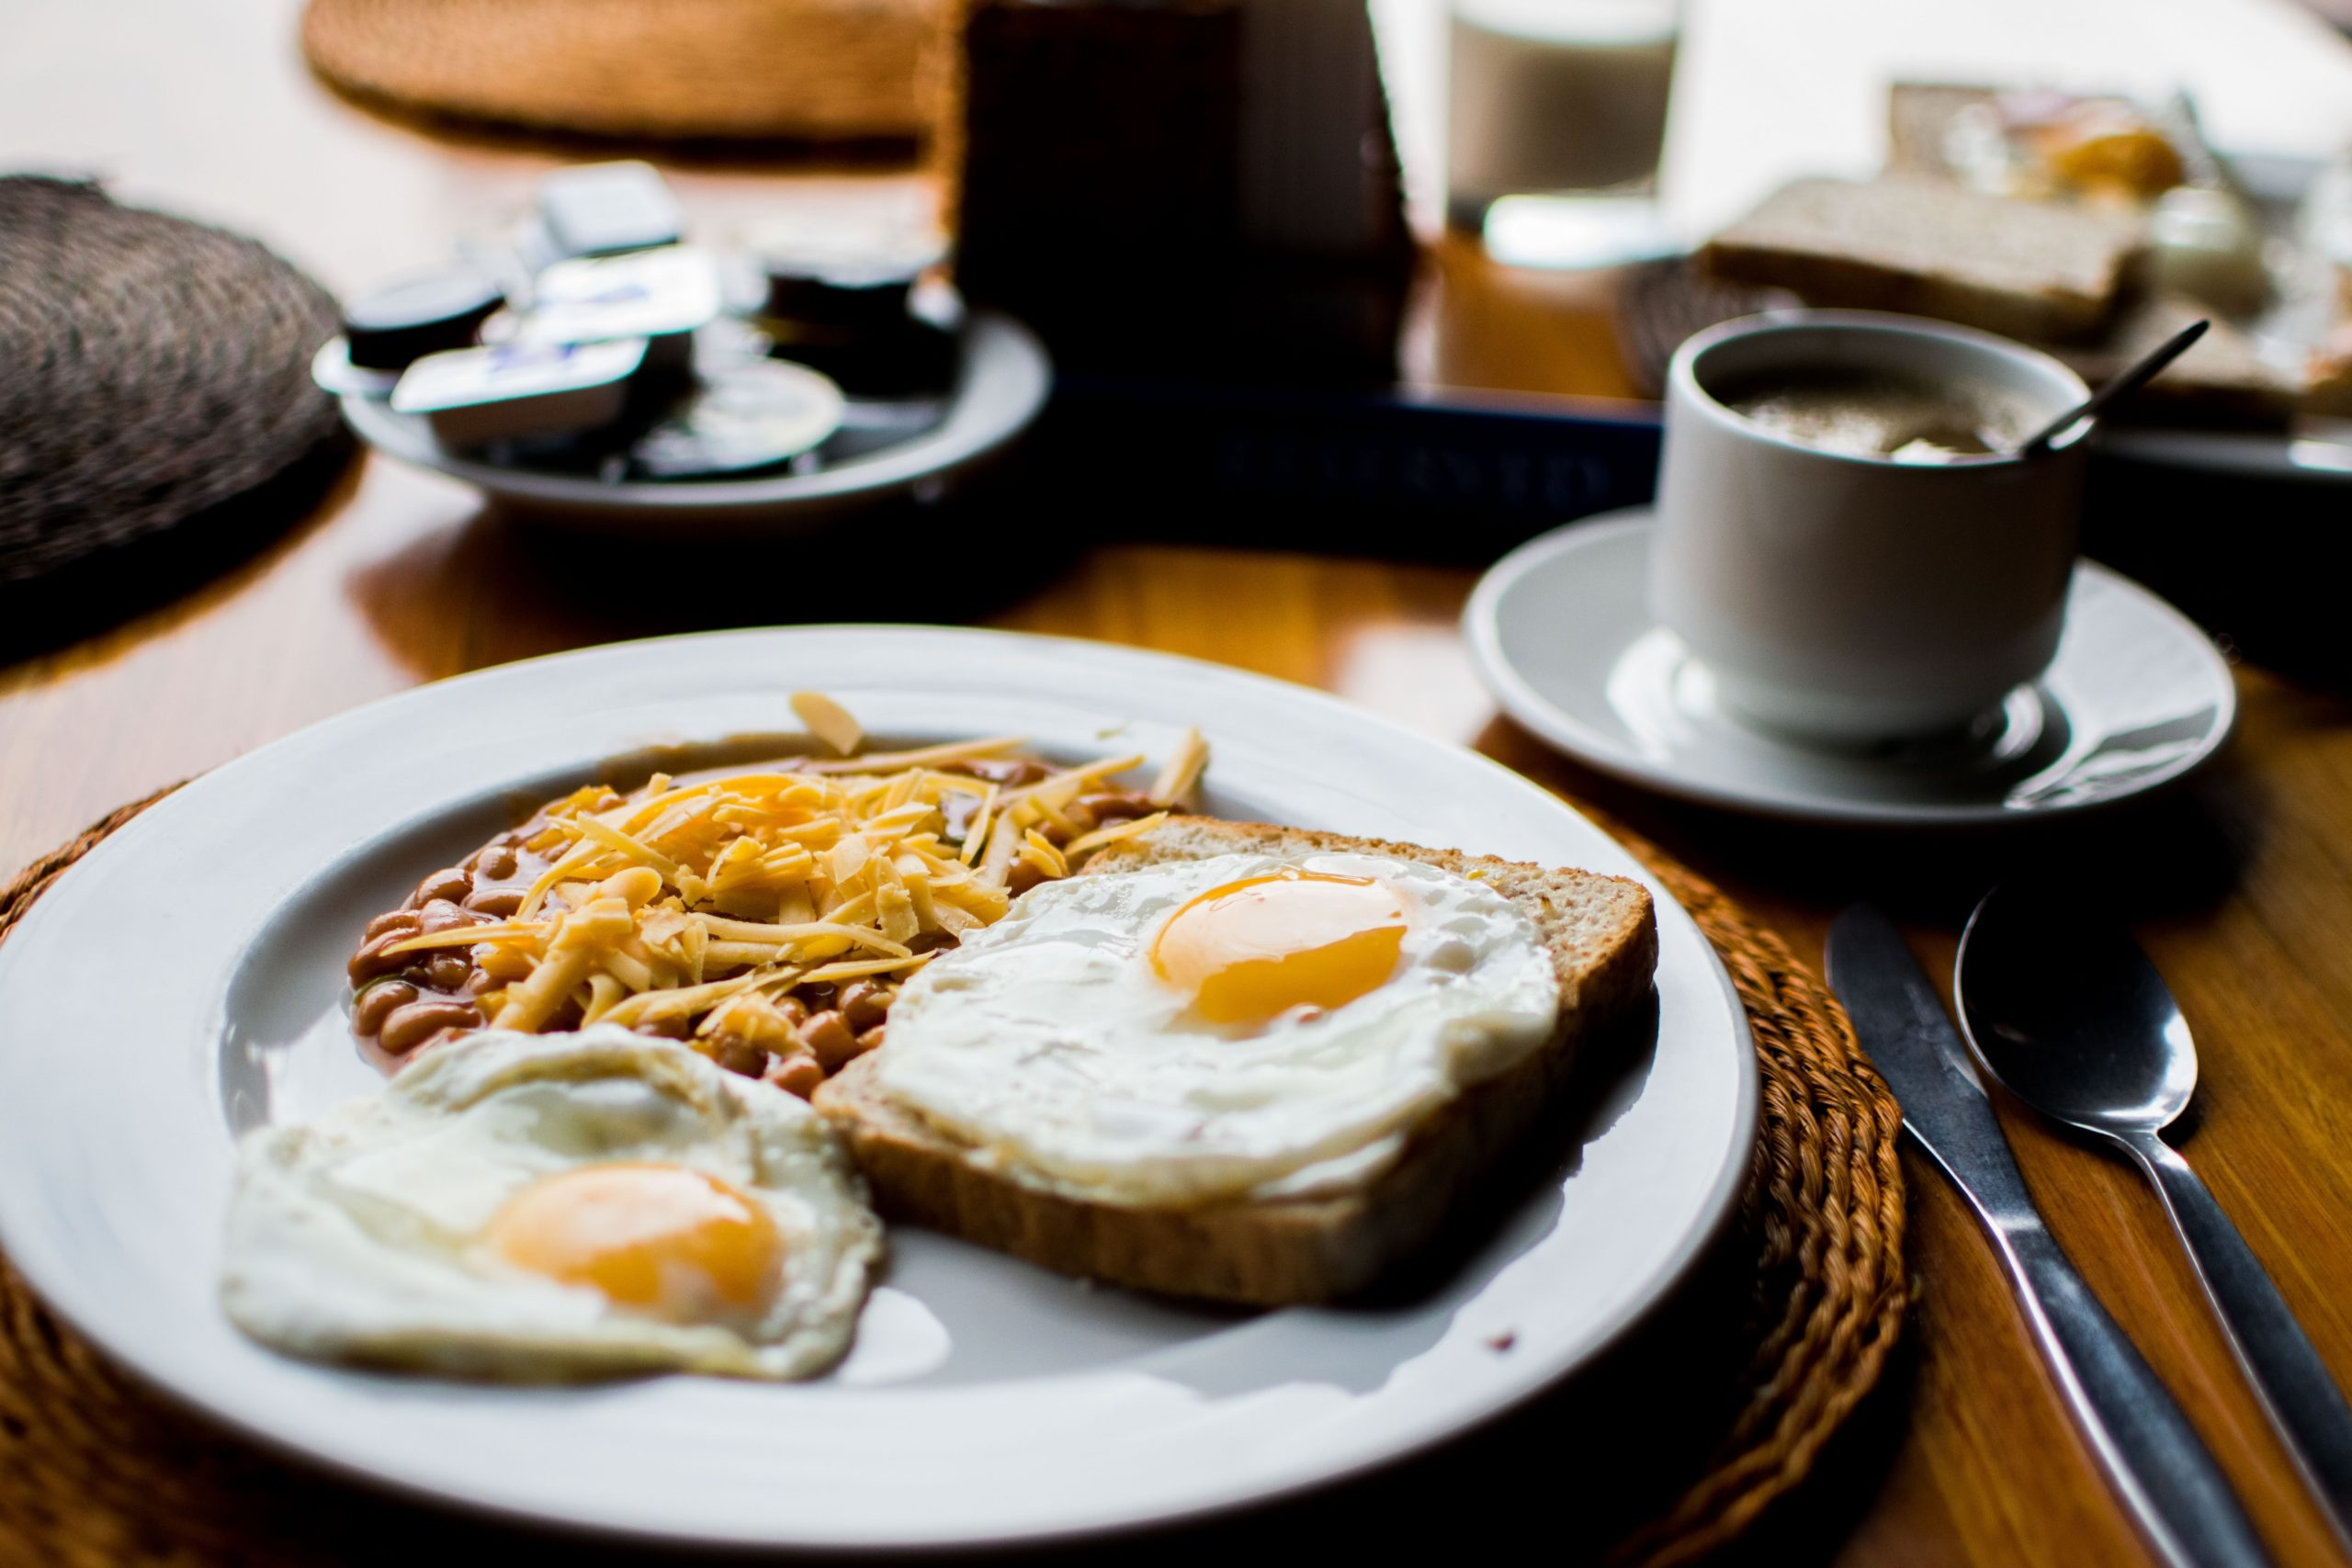 Impact Of Breakfast Calories On Daily Energy Intake